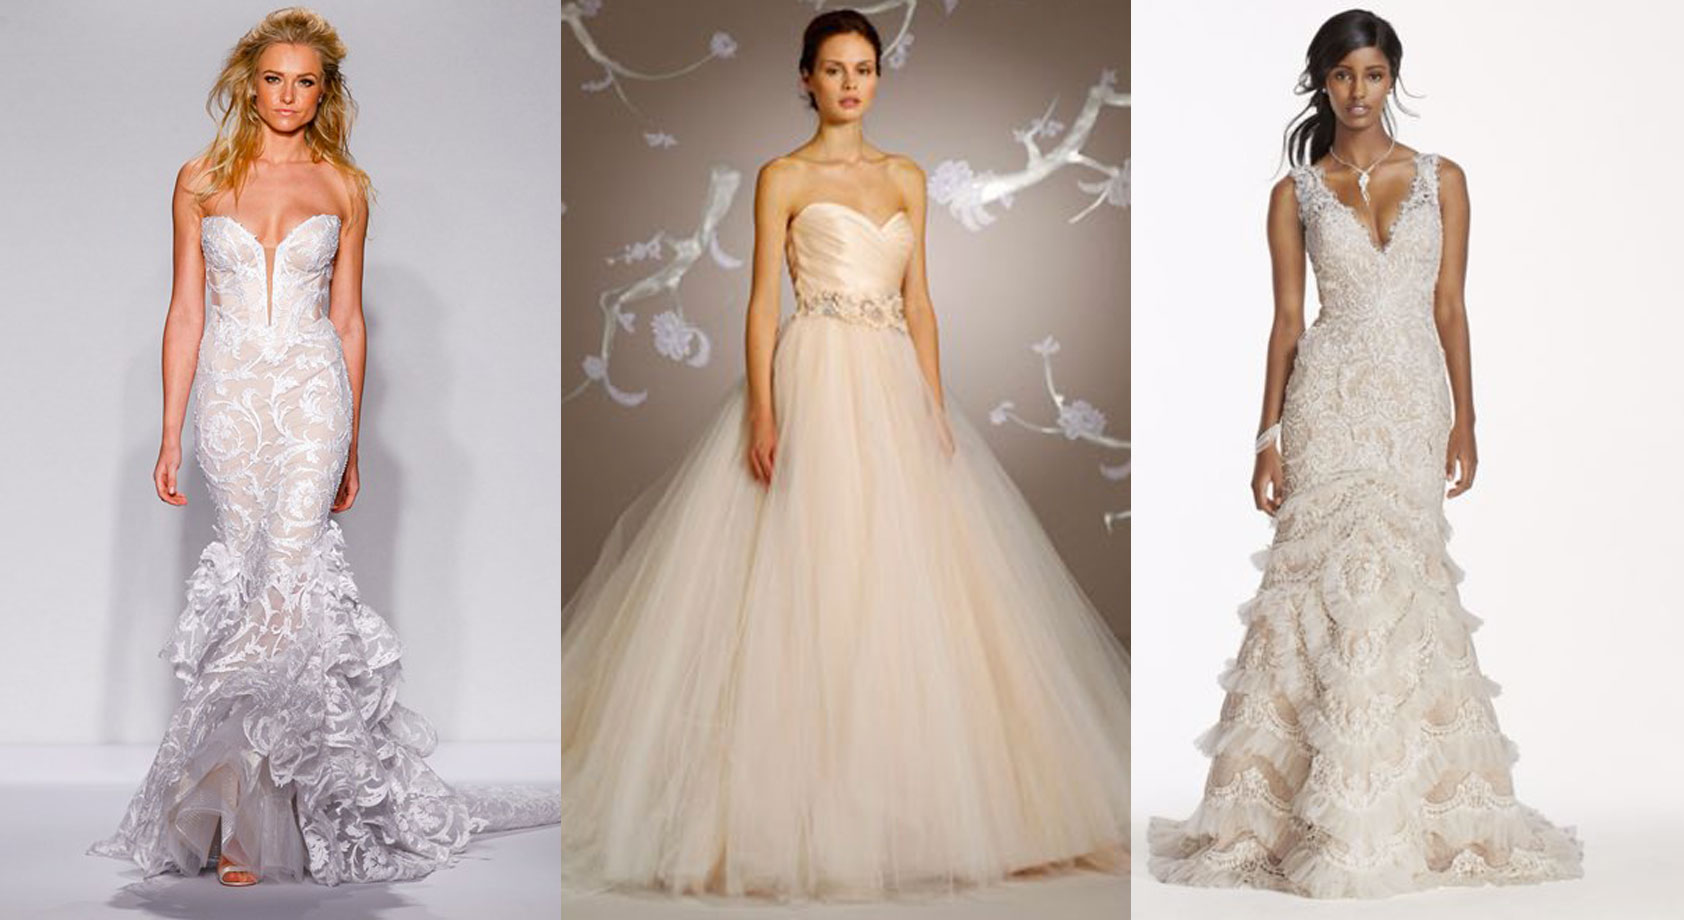 Can you spot the most expensive wedding dress?